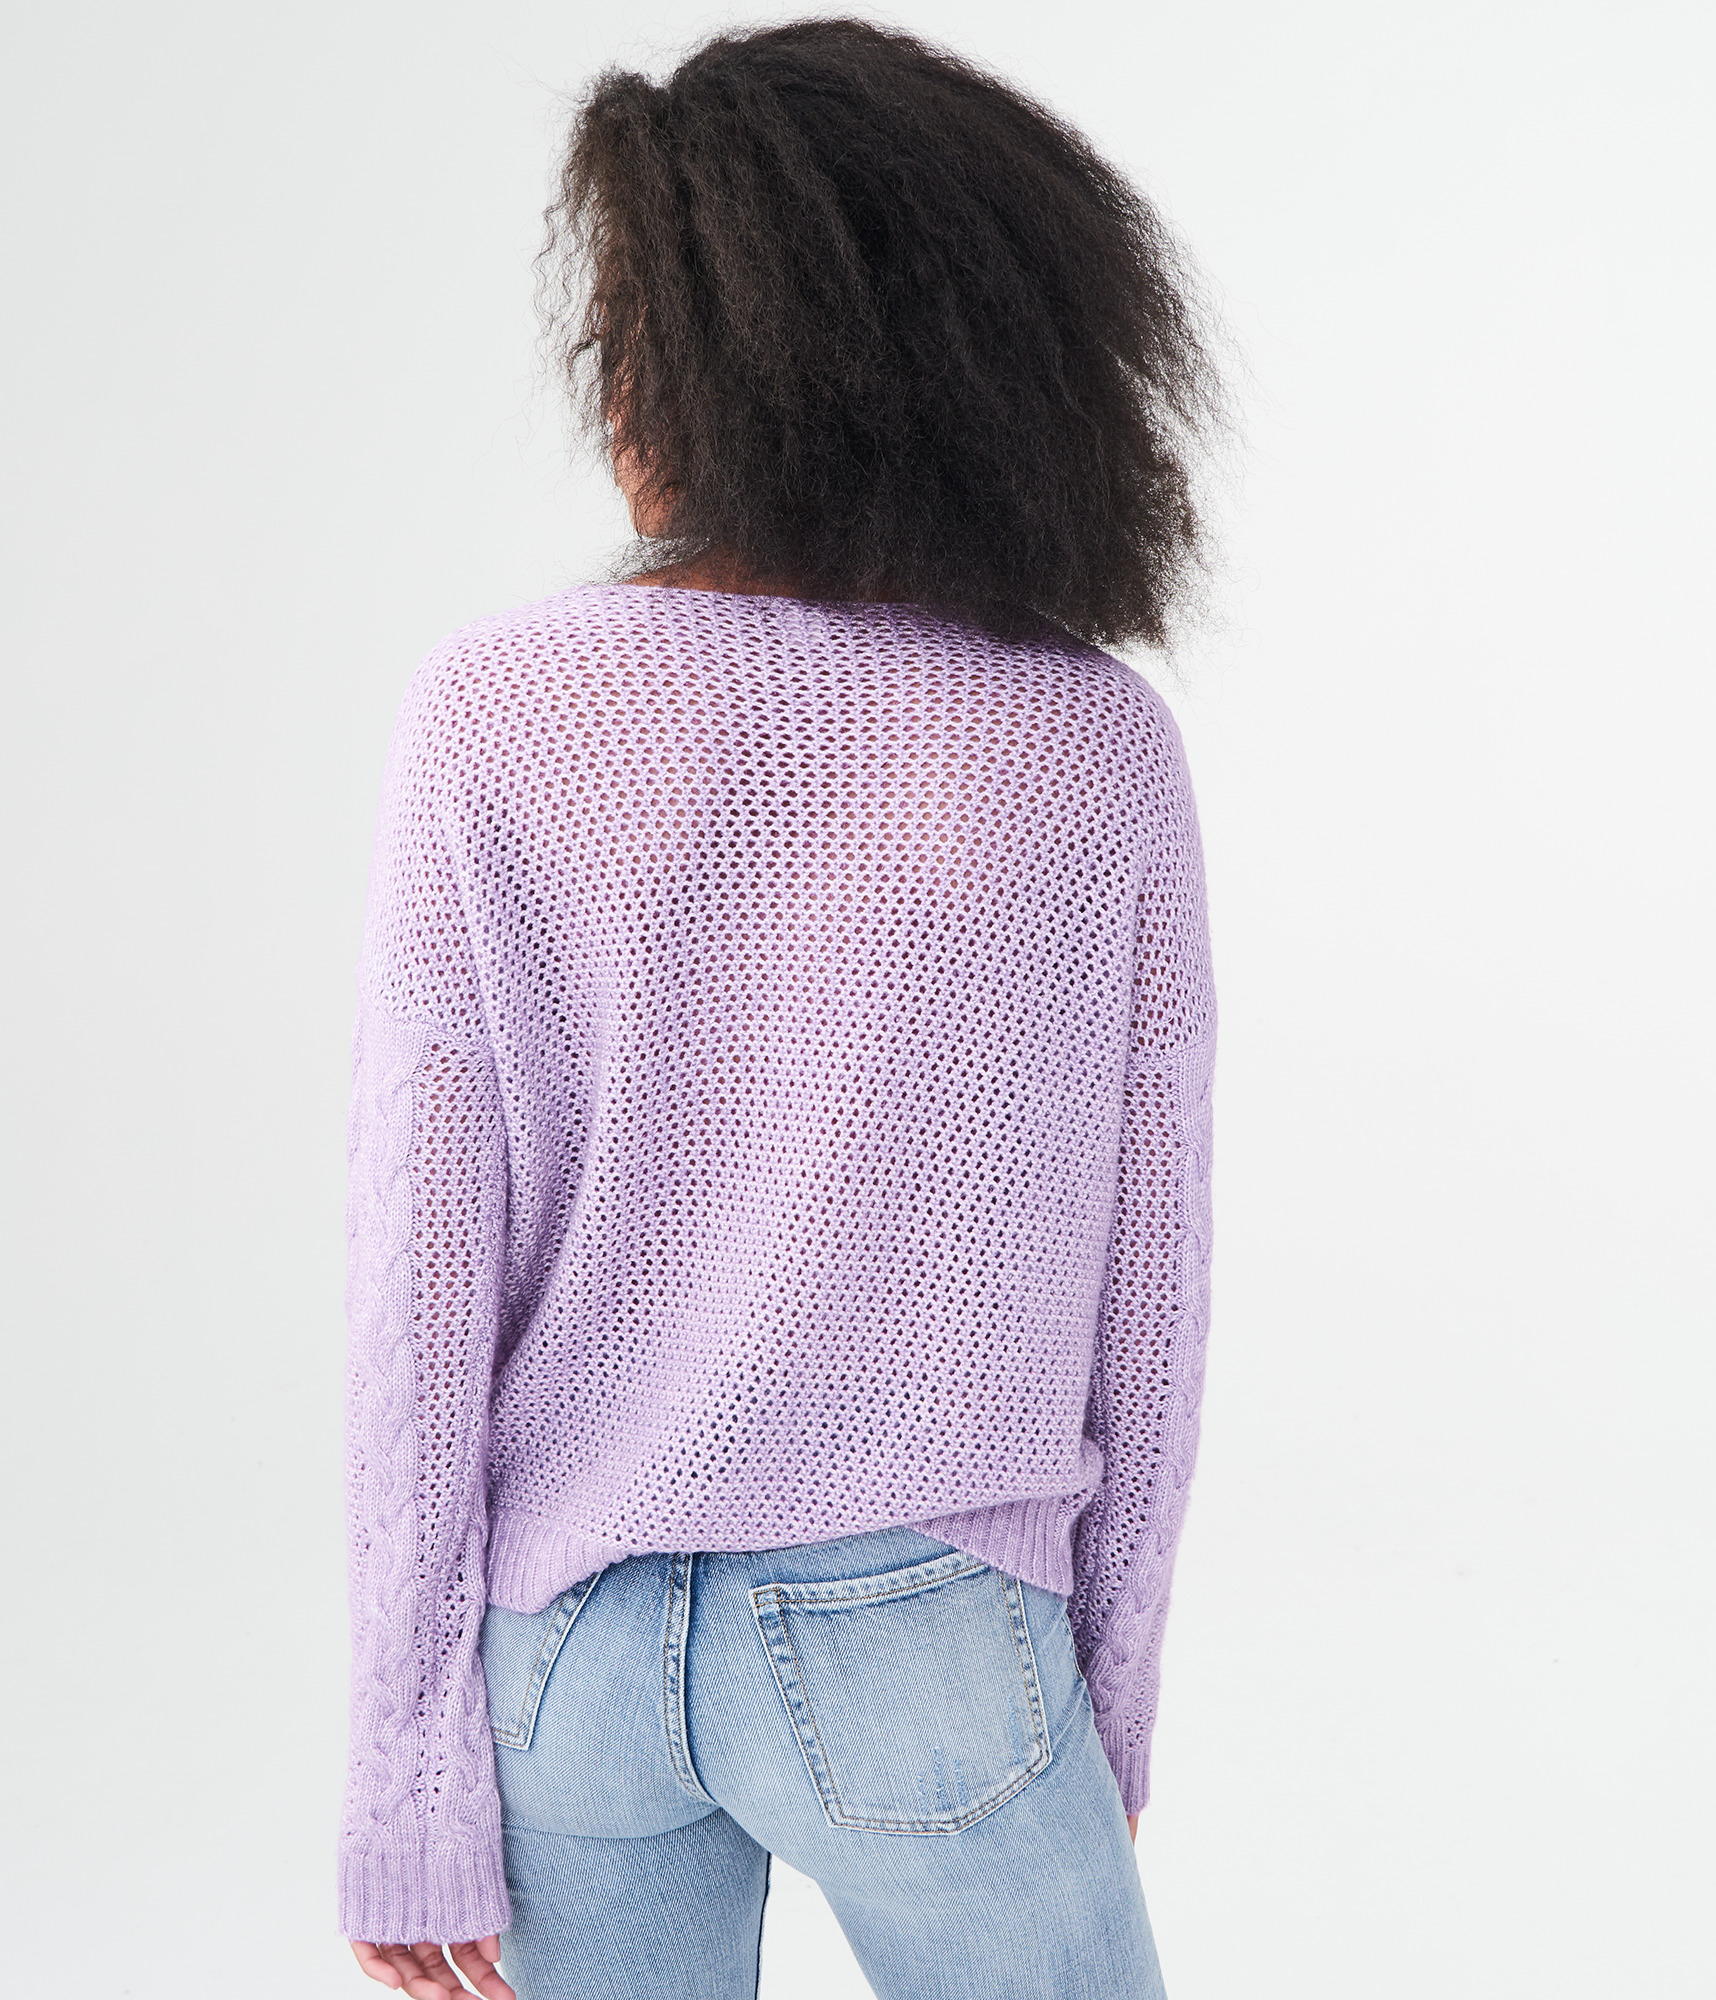 45713a8376eb96 aeropostale-womens-cable-lace-up-sweater thumbnail 15